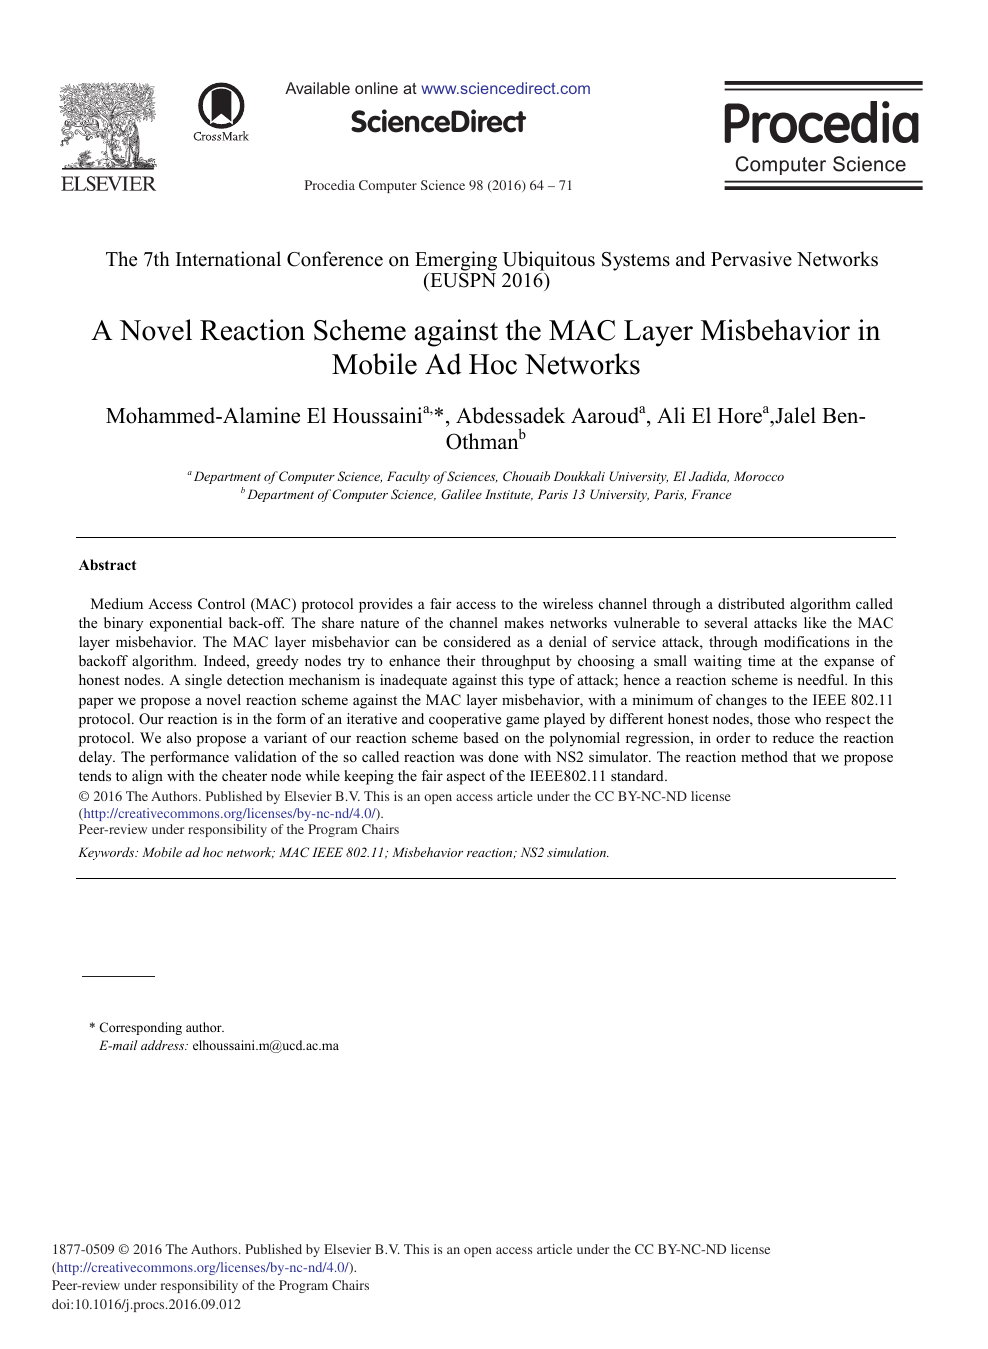 A Novel Reaction Scheme against the MAC Layer Misbehavior in Mobile